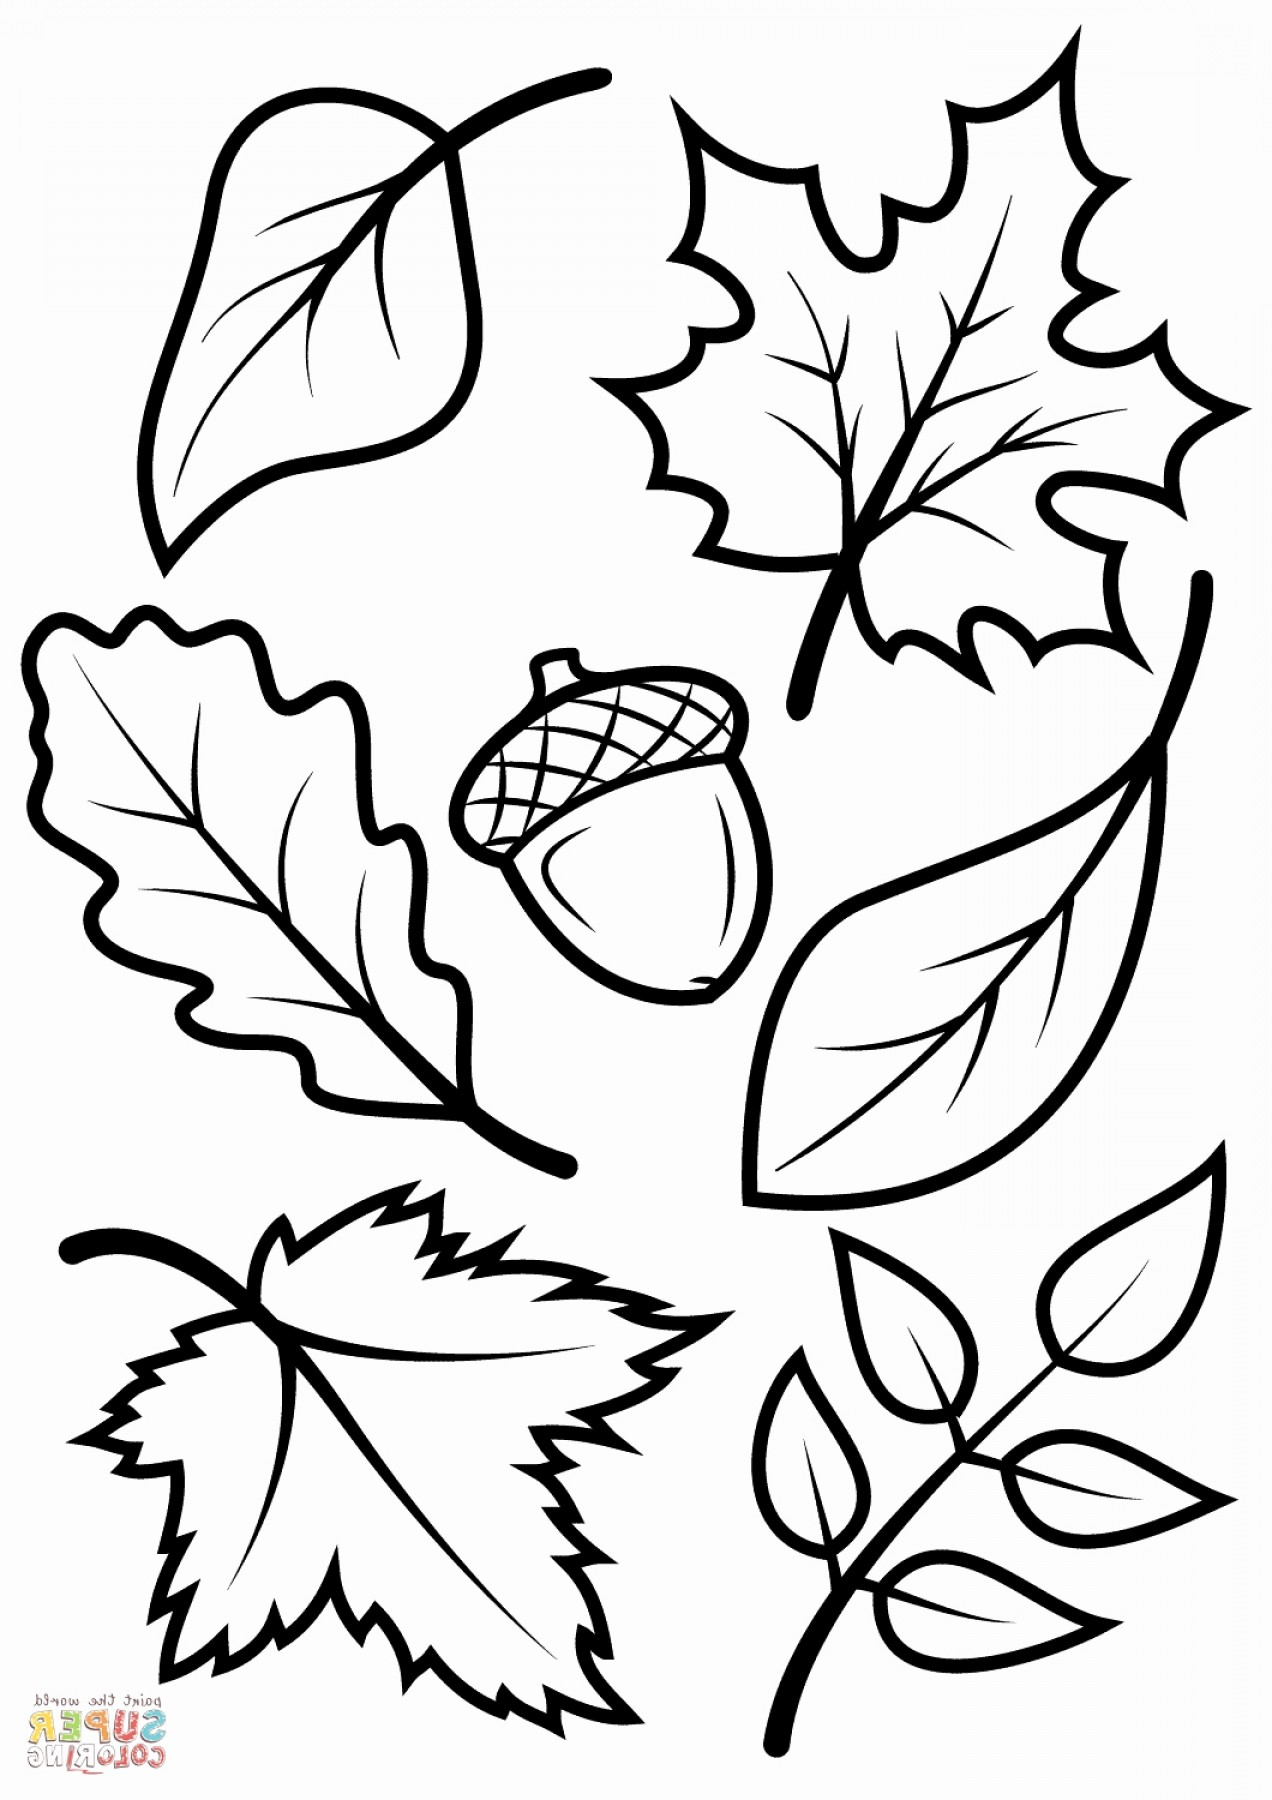 Superman Black And White Vector: Superman Vector Luxury Awesome Autumn Leaf Coloring Sheet Gallery